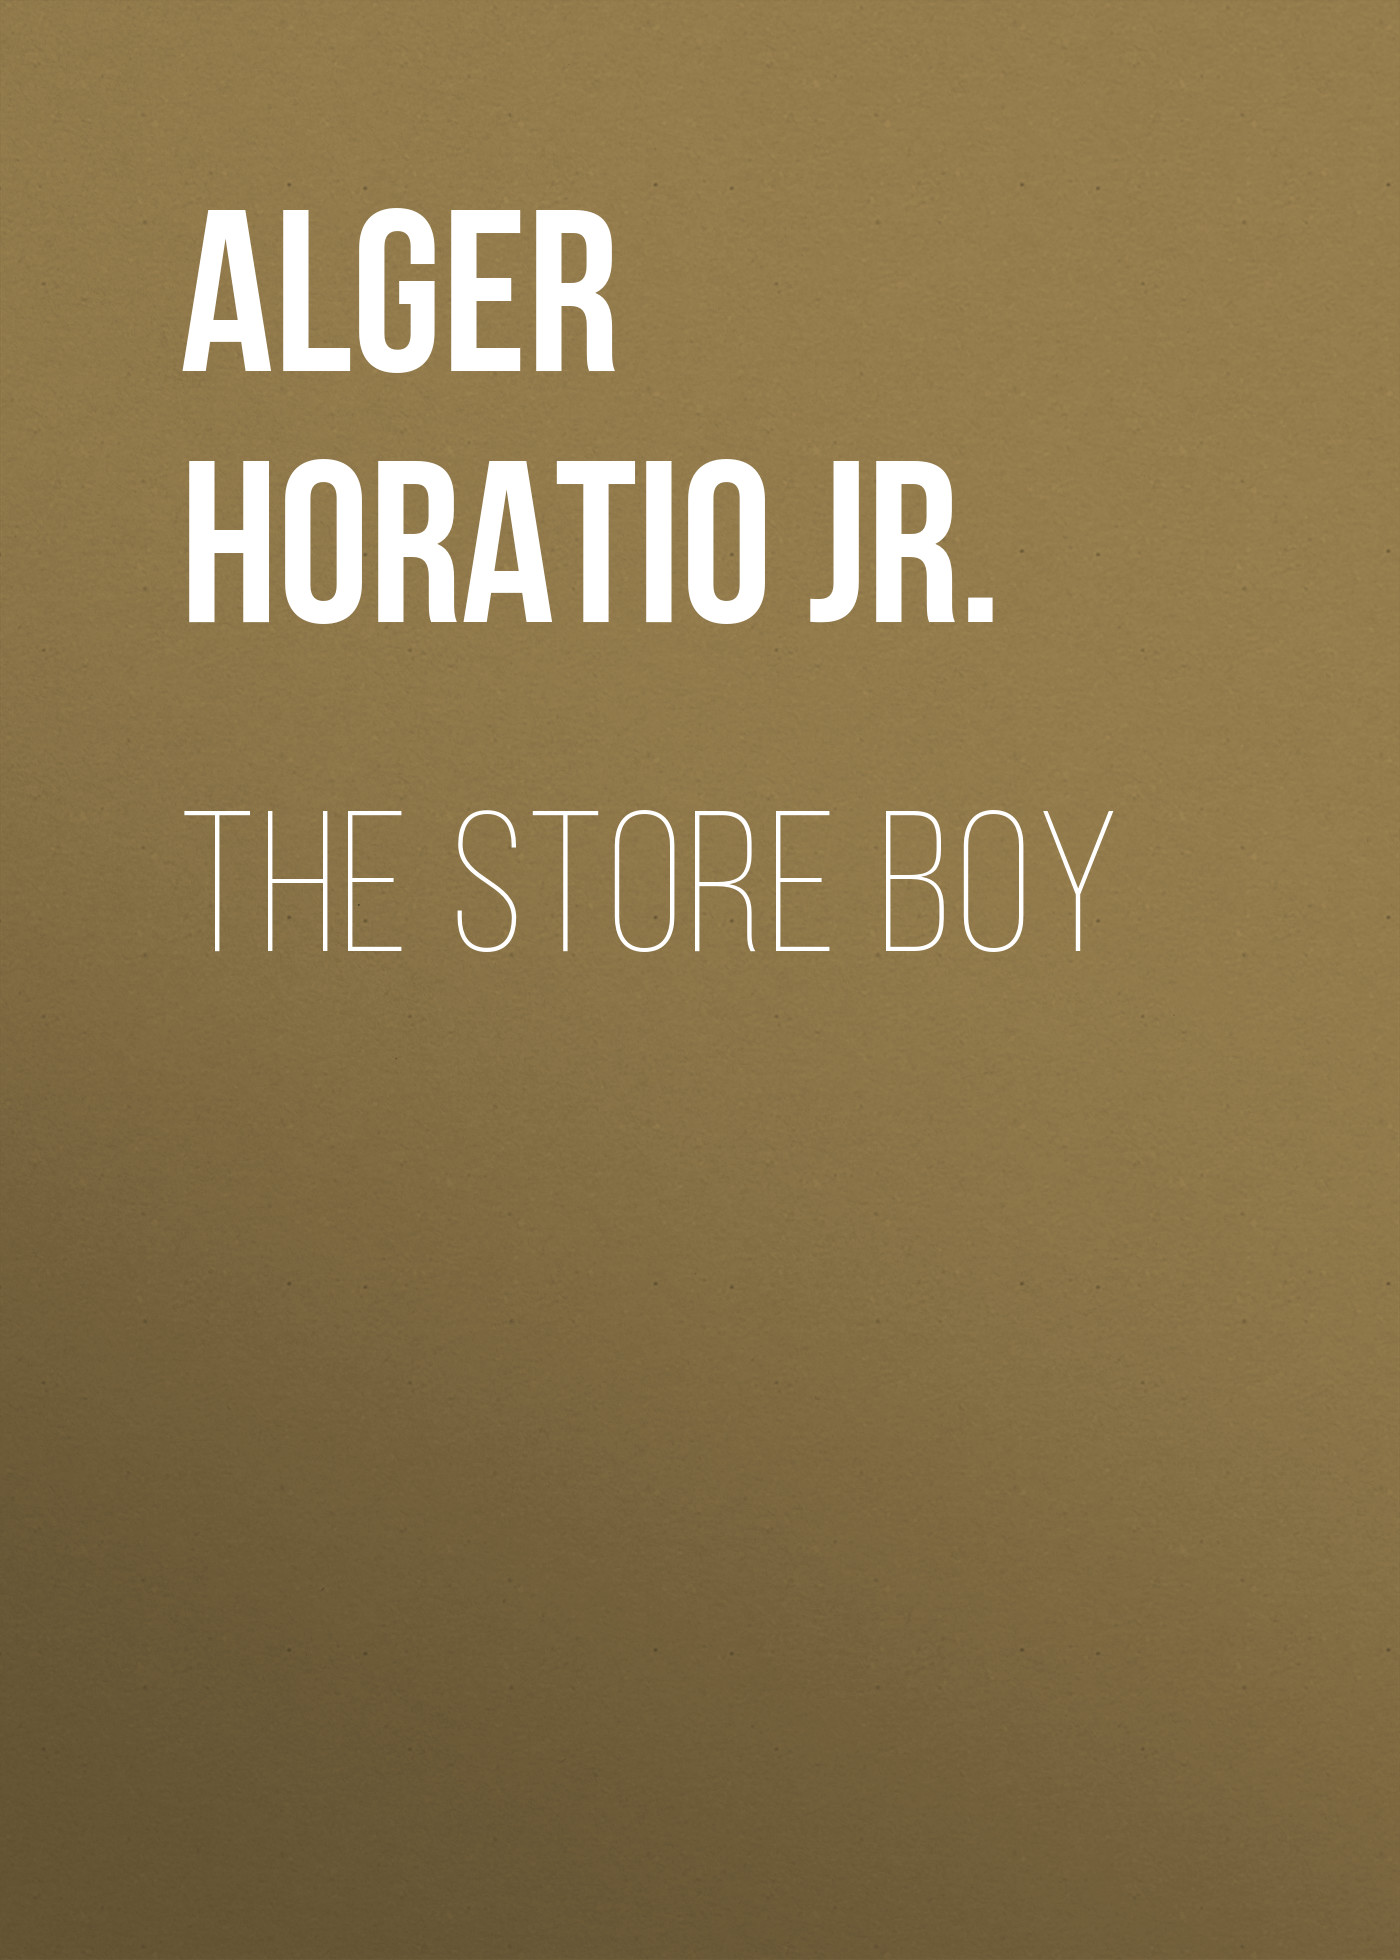 все цены на Alger Horatio Jr. The Store Boy в интернете